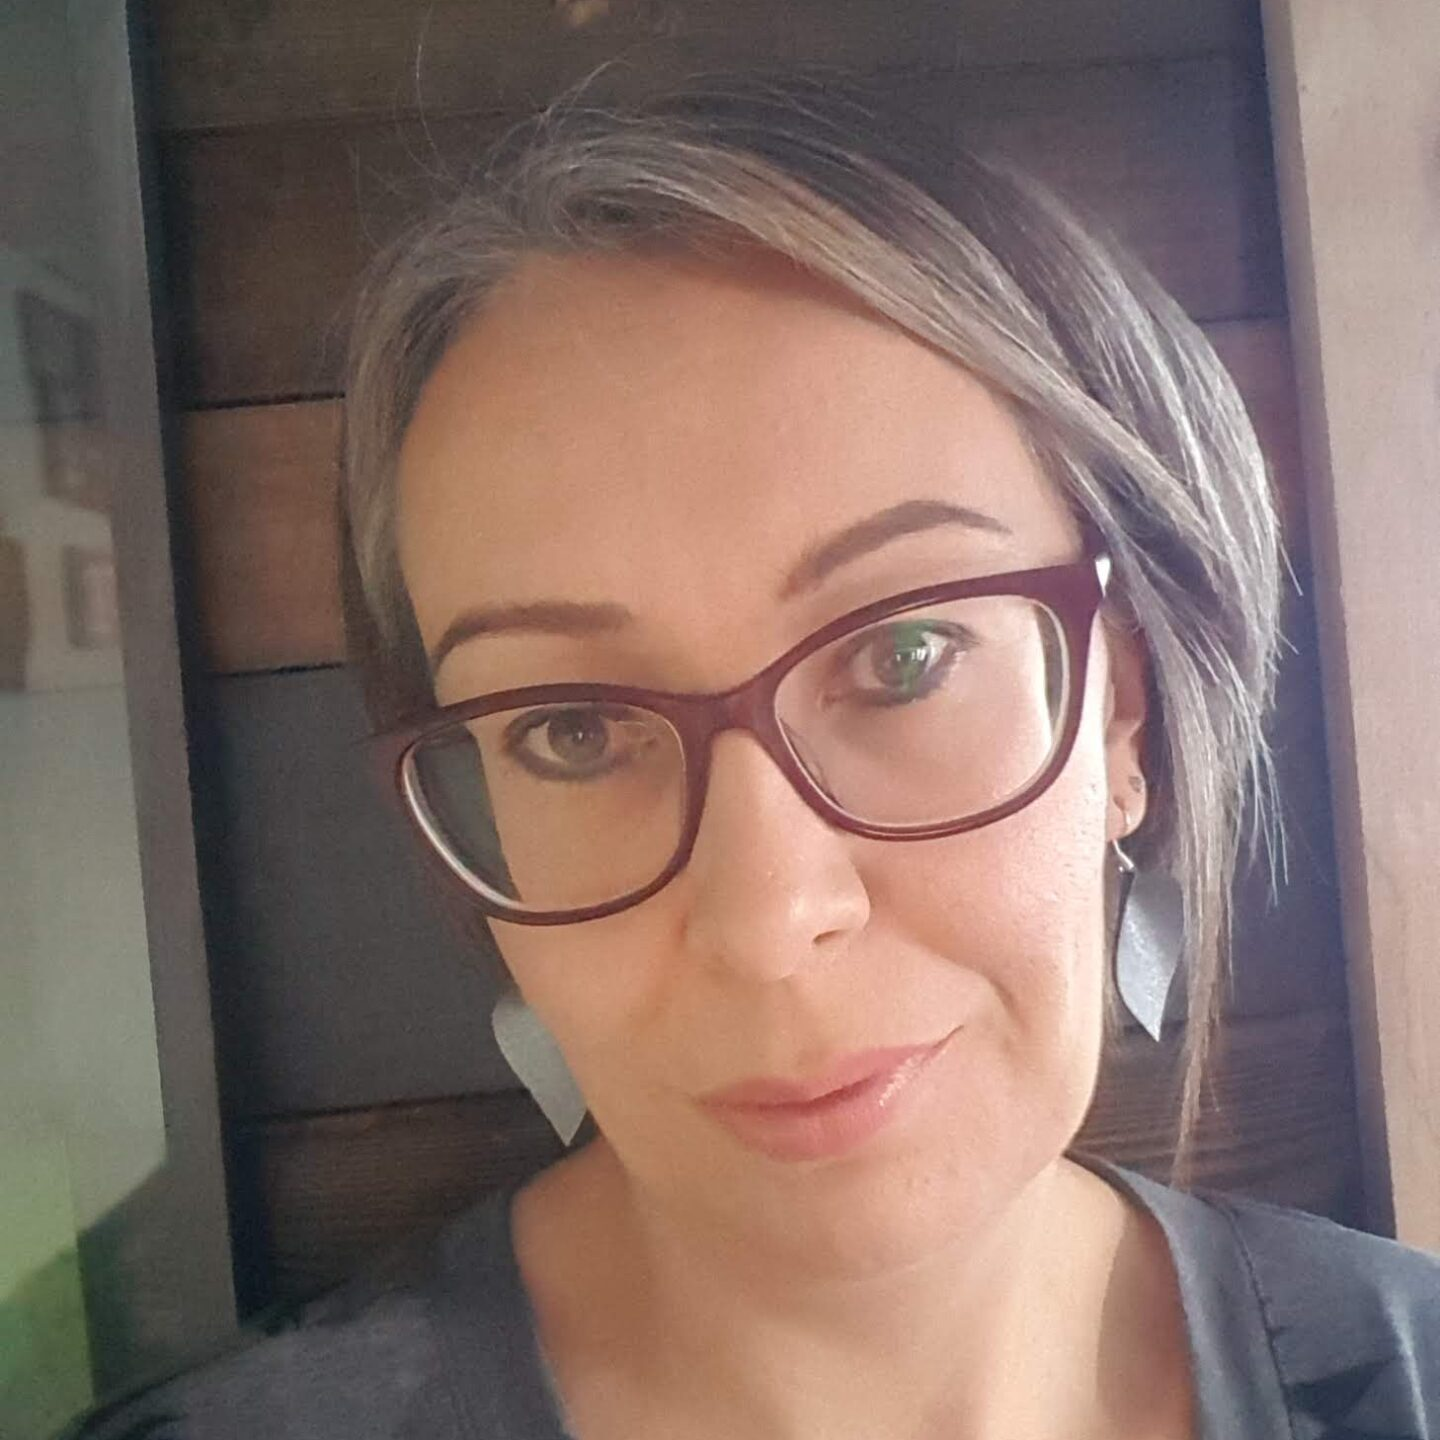 Tricia lreland, jewelry, Indigenous Artist, First Nations, Indigenous Arts Collective of Canada, Pass The Feather